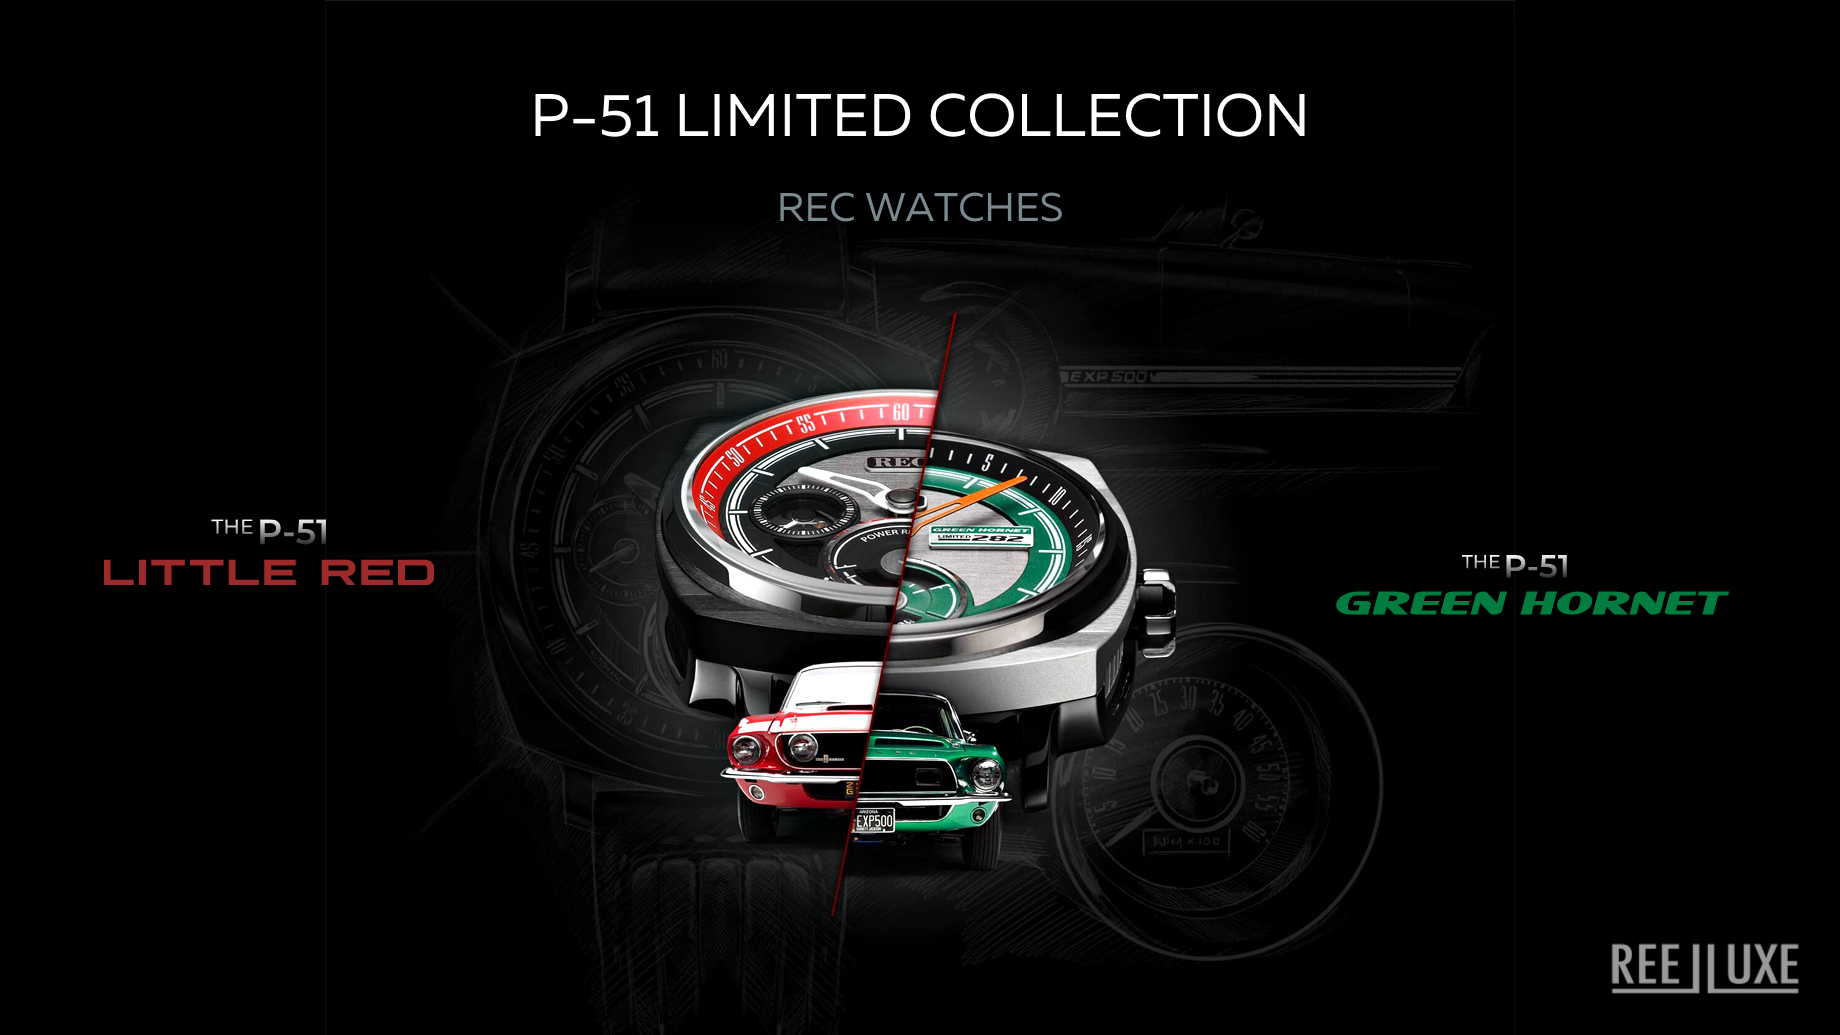 P-51 Little Red & Green Hornet Limited Collection - REC Watches